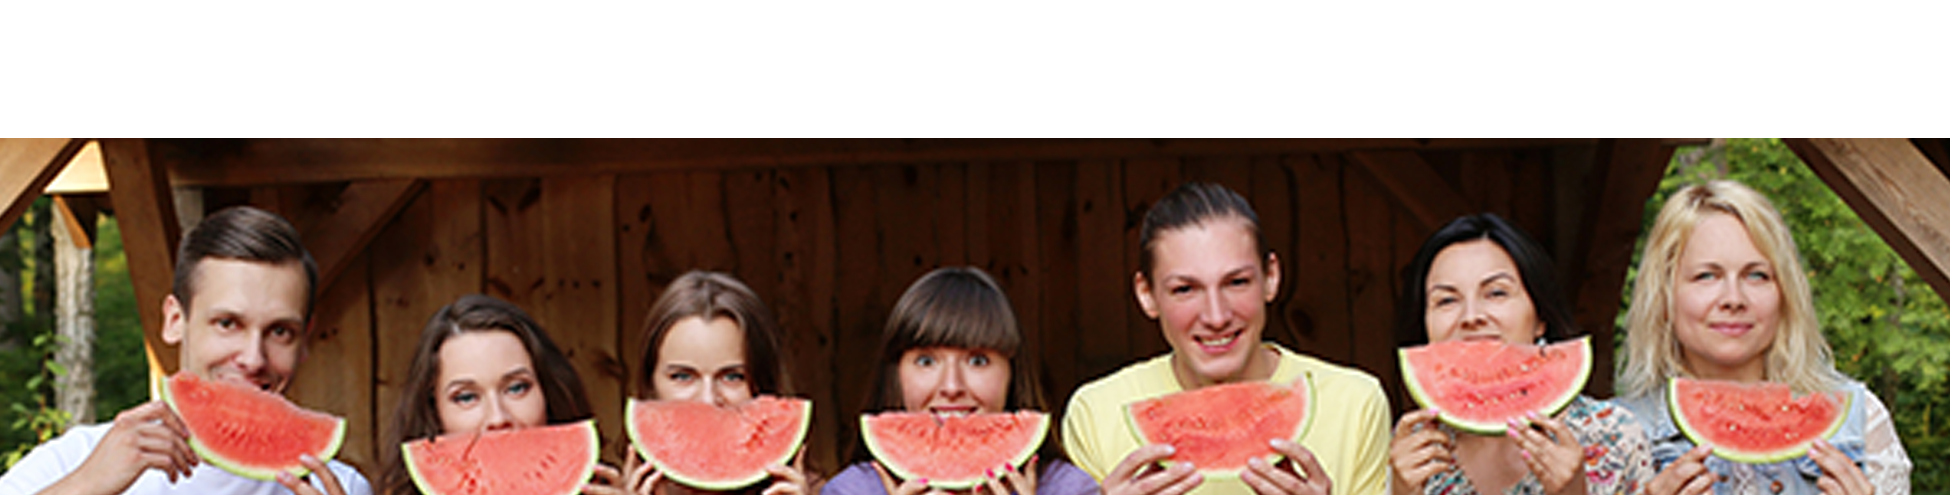 Teambuilding group eating watermelons